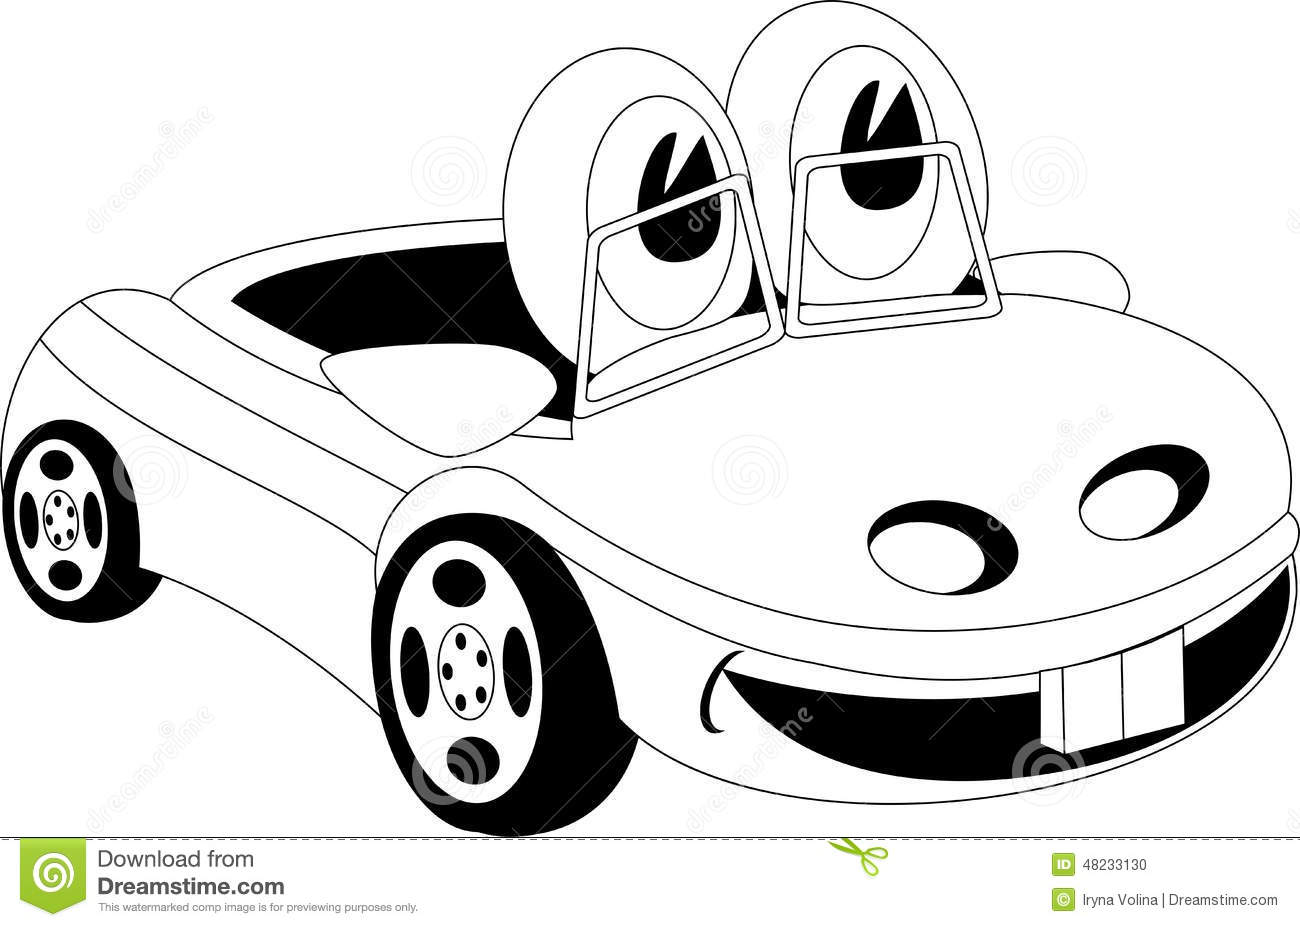 Van Clipart Image Black And 5969233 as well Clipart illustration of an outline of a retro van 0071 1006 2115 0955 moreover Nascar Racing likewise Adidas Superstar furthermore Pokemon Pikachu Coloring Pages. on cute race car clip art